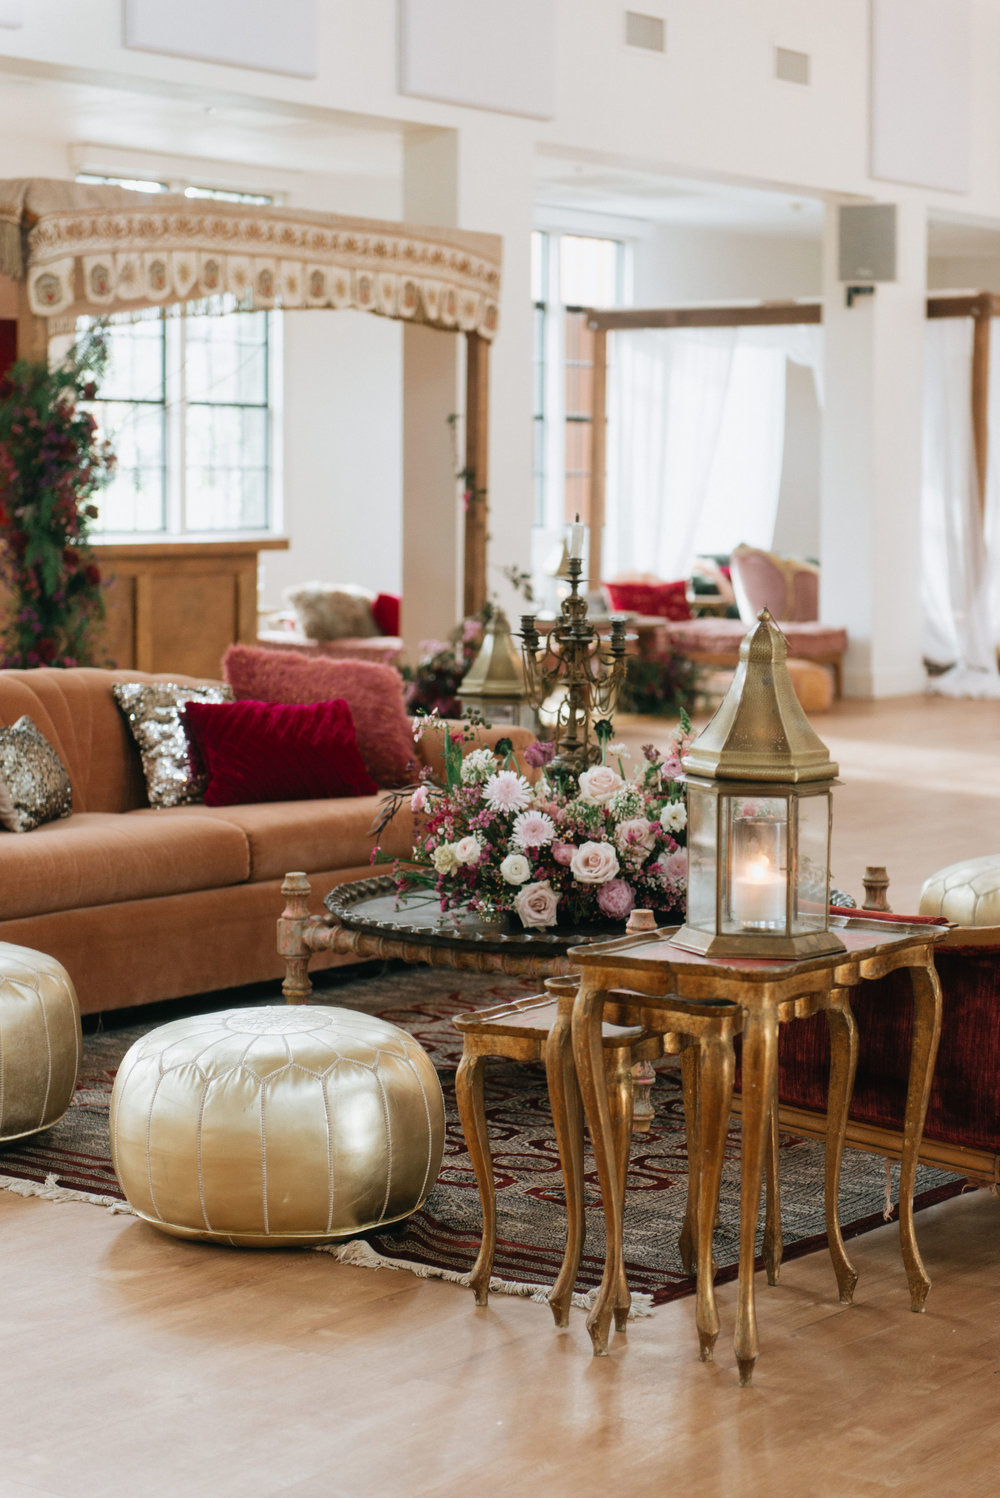 Pow Wow Design Studio lounges and sets transported you to a mythical place. And the mix of vintage golds and deep floral accents made for dream seating.